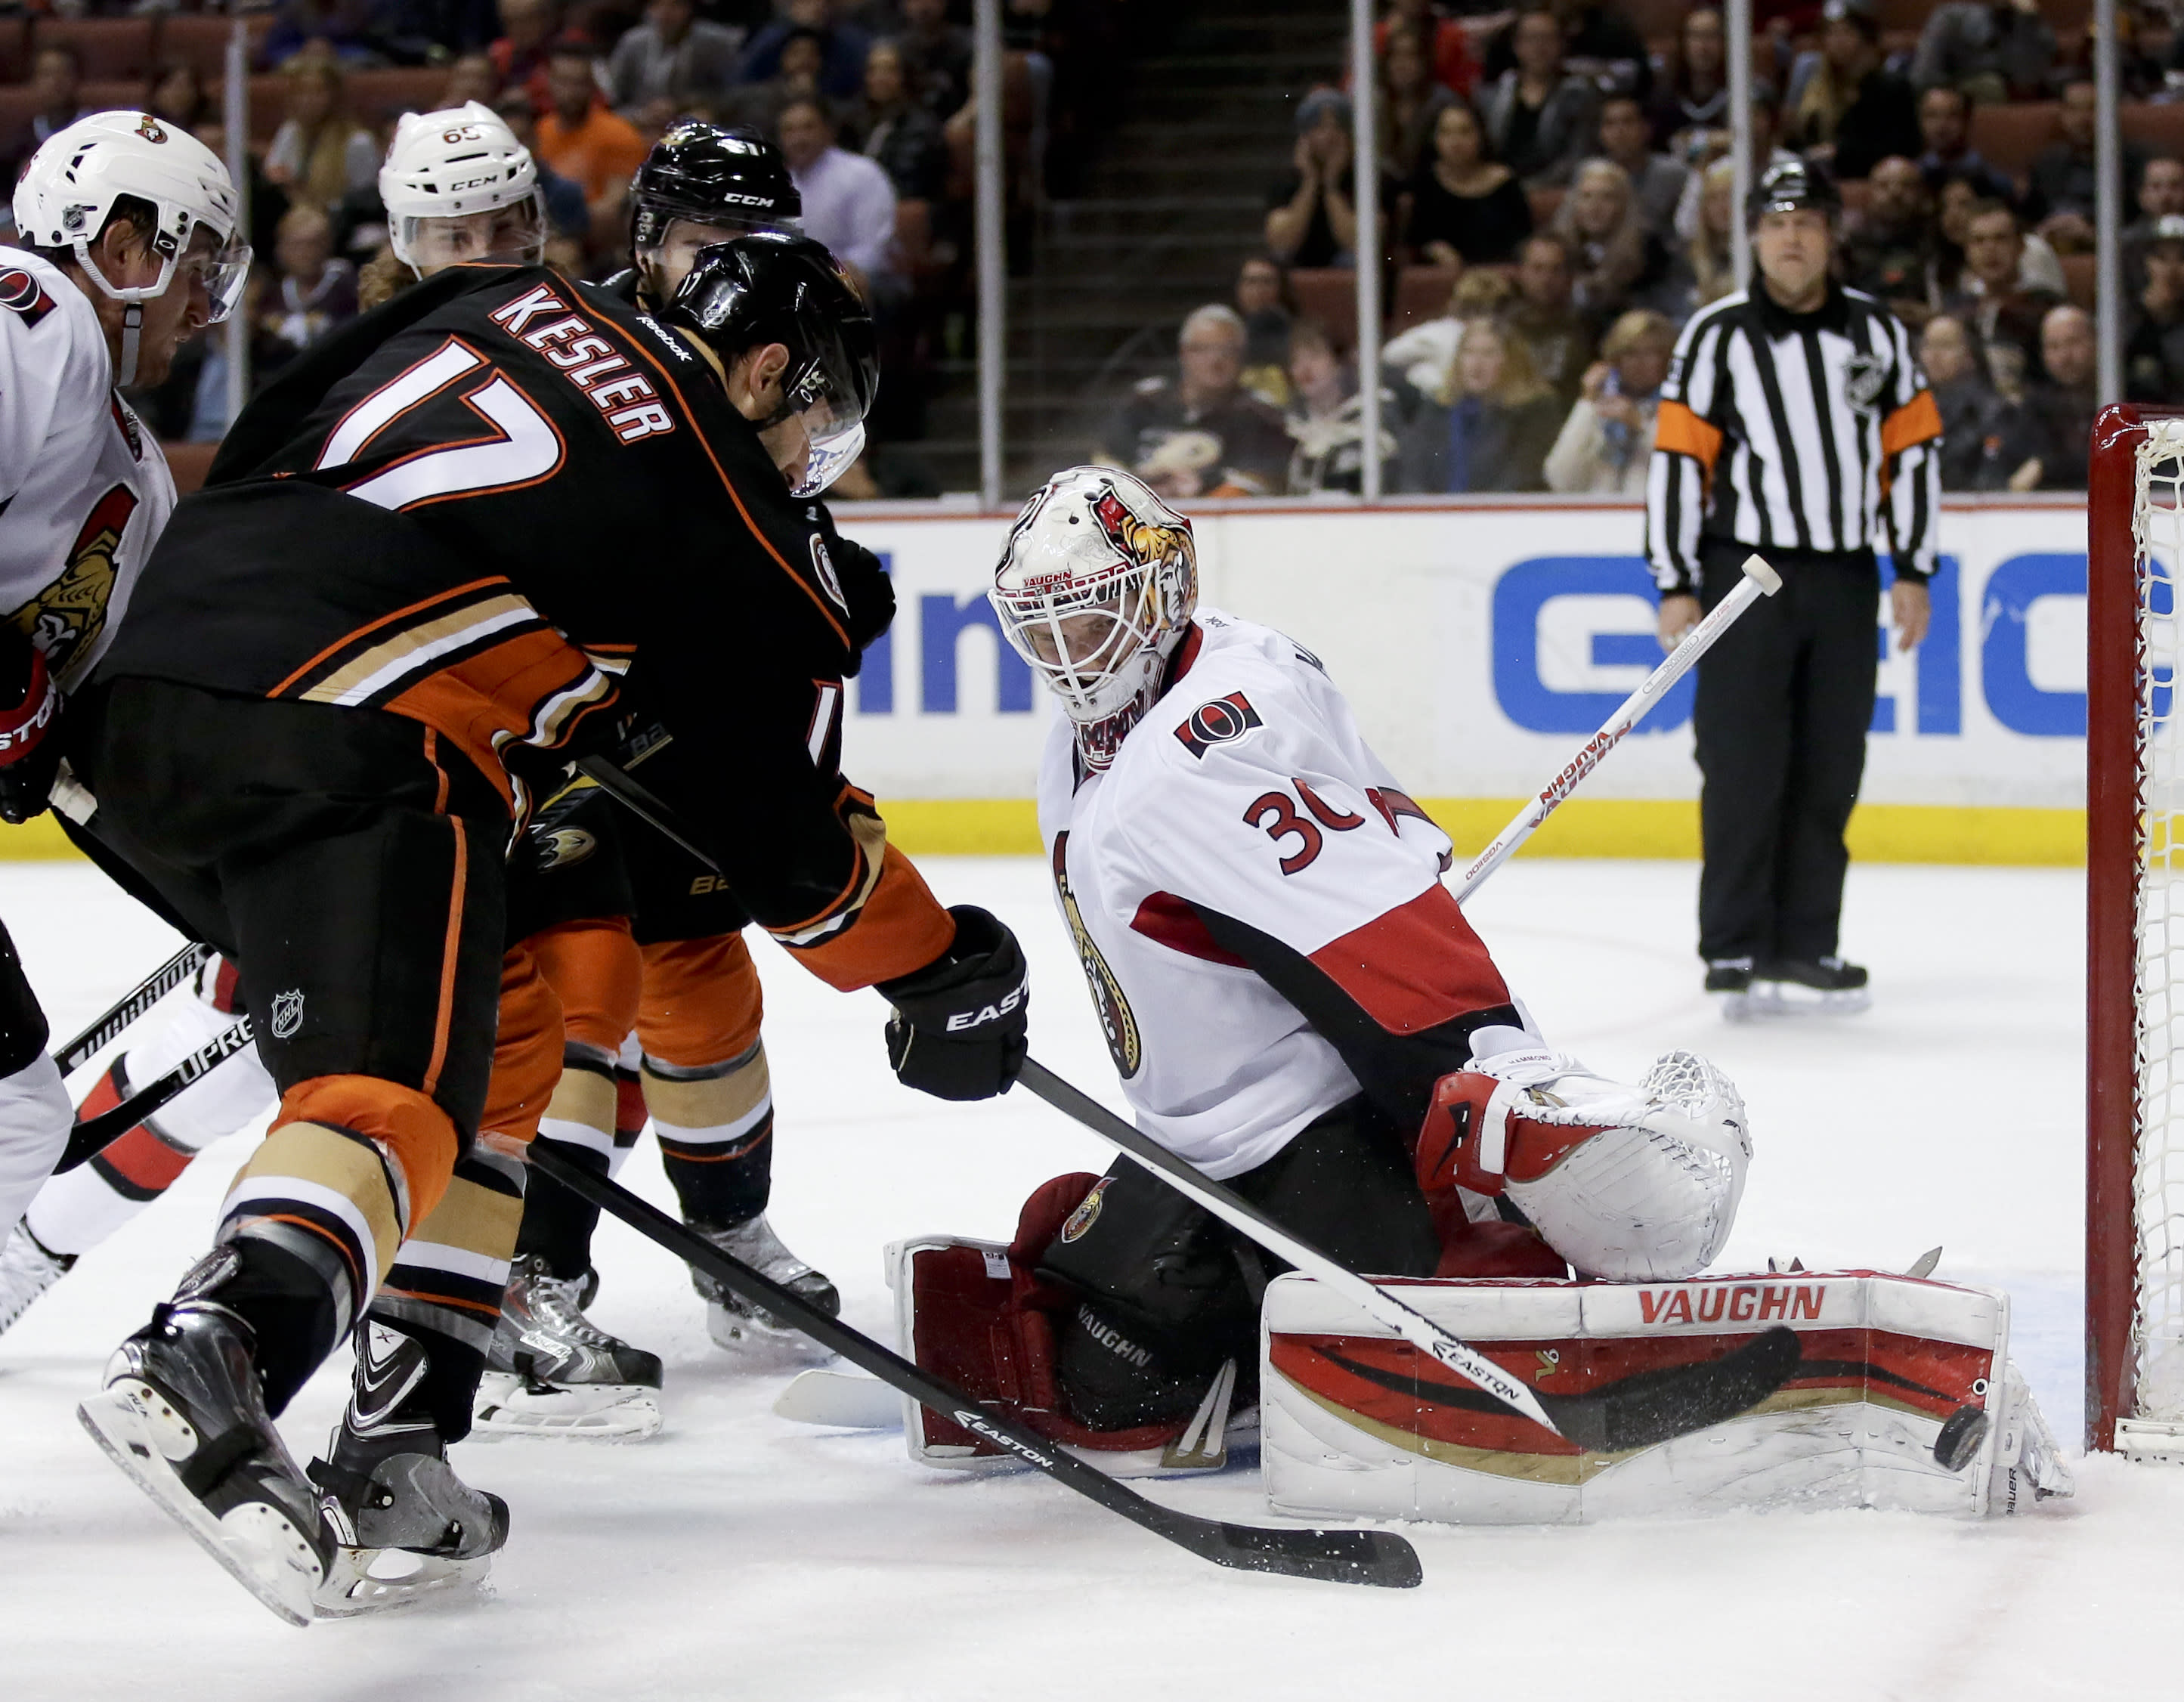 Senators' Hammond earns 1st NHL shutout in win over Ducks